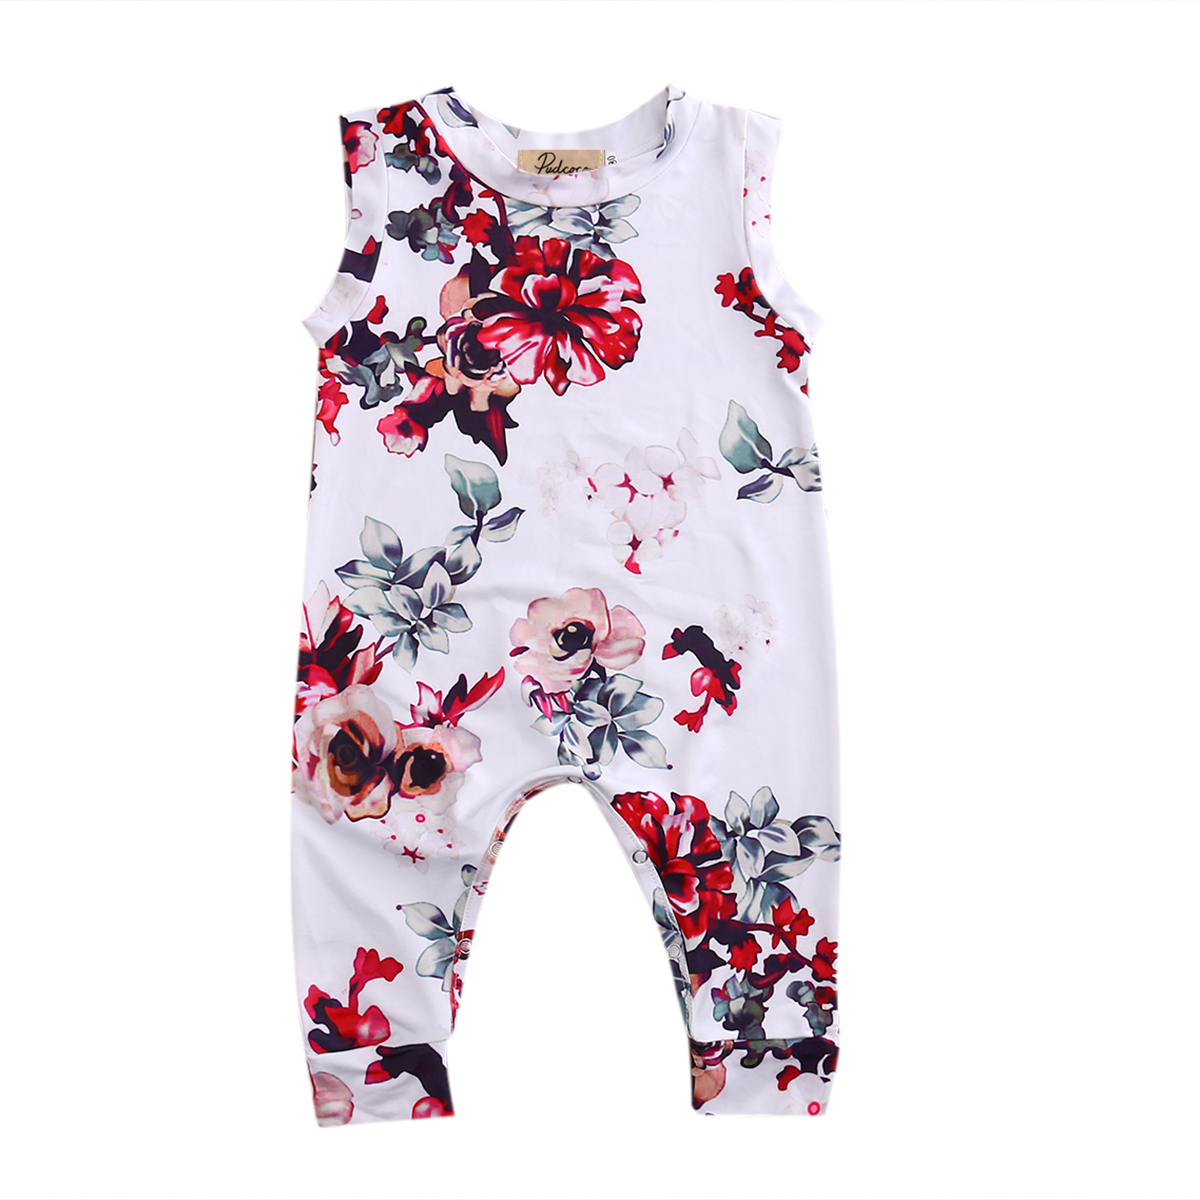 2017 New Style Summer Toddler Newborn Infant Baby Girl Floral Romper Pudcoco Sleeveless Jumpsuit Outfit Sunsuit Clothing newborn infant baby girl clothes strap lace floral romper jumpsuit outfit summer cotton backless one pieces outfit baby onesie